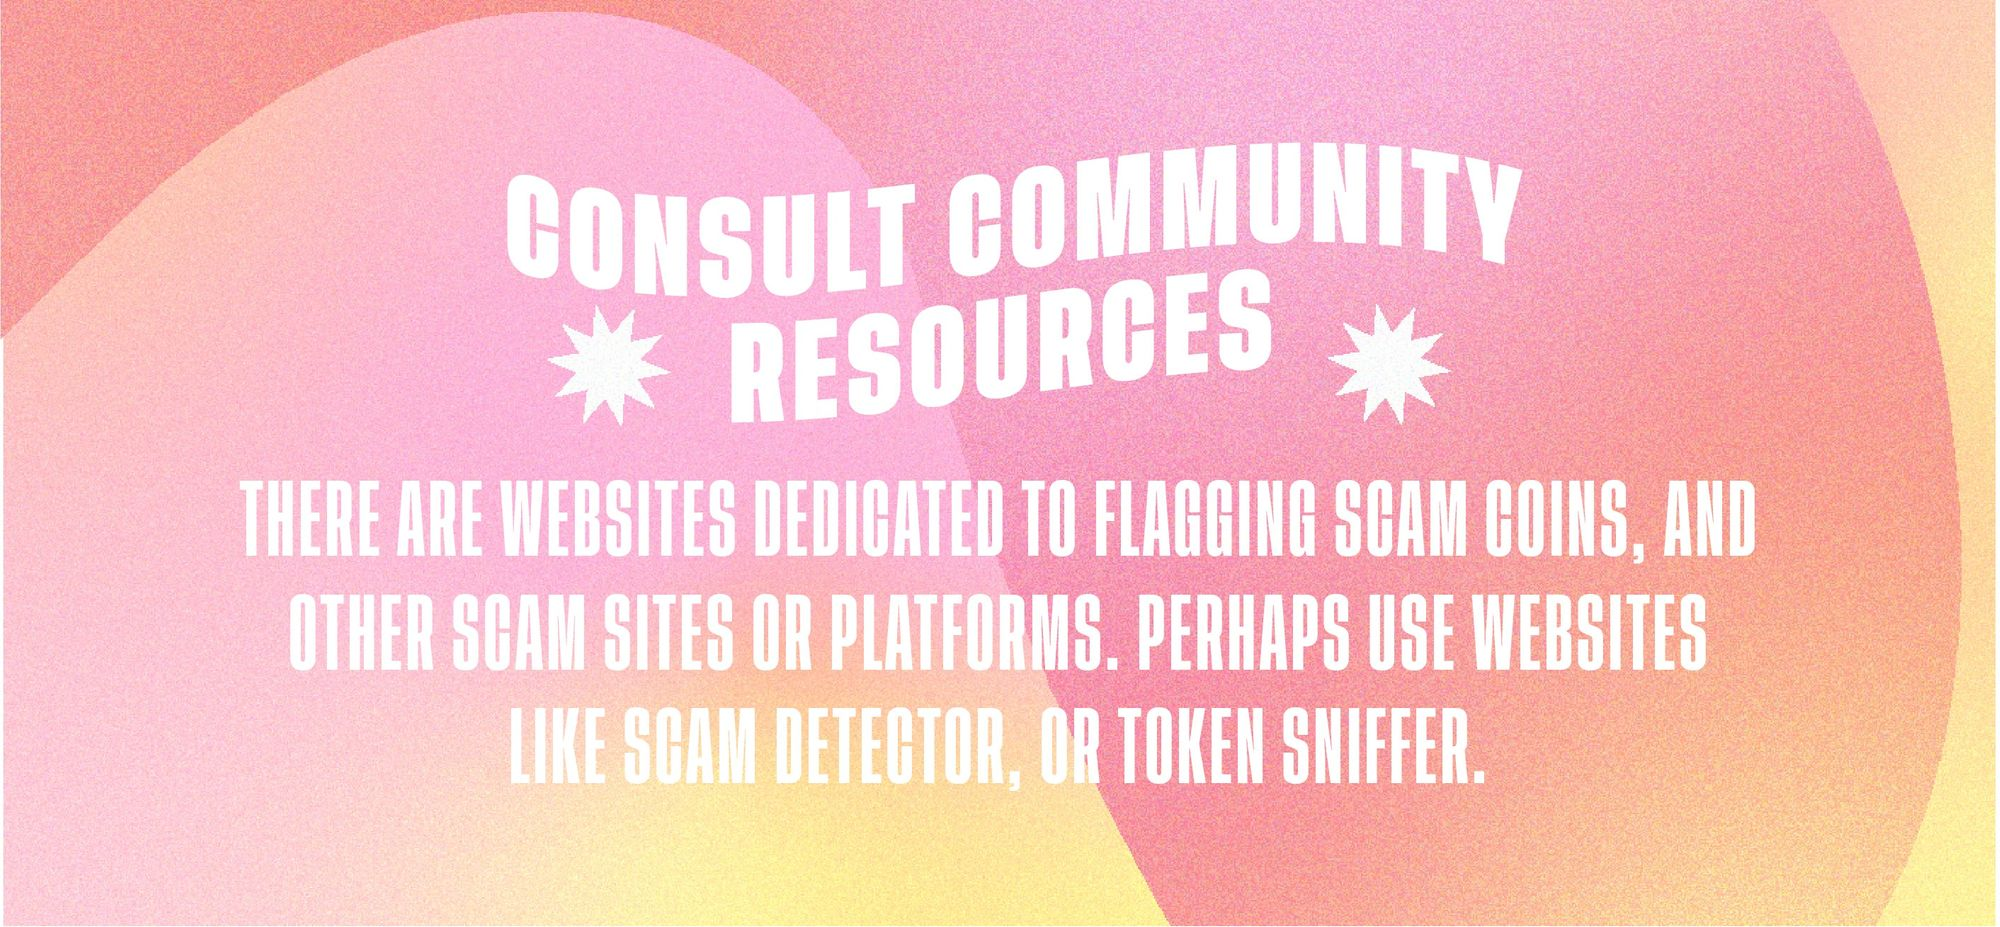 Consult Community Resources: there are websites dedicated to flagging scam coins, and other scam sites or platforms. perhaps use websites like scam detector, or token sniffer.